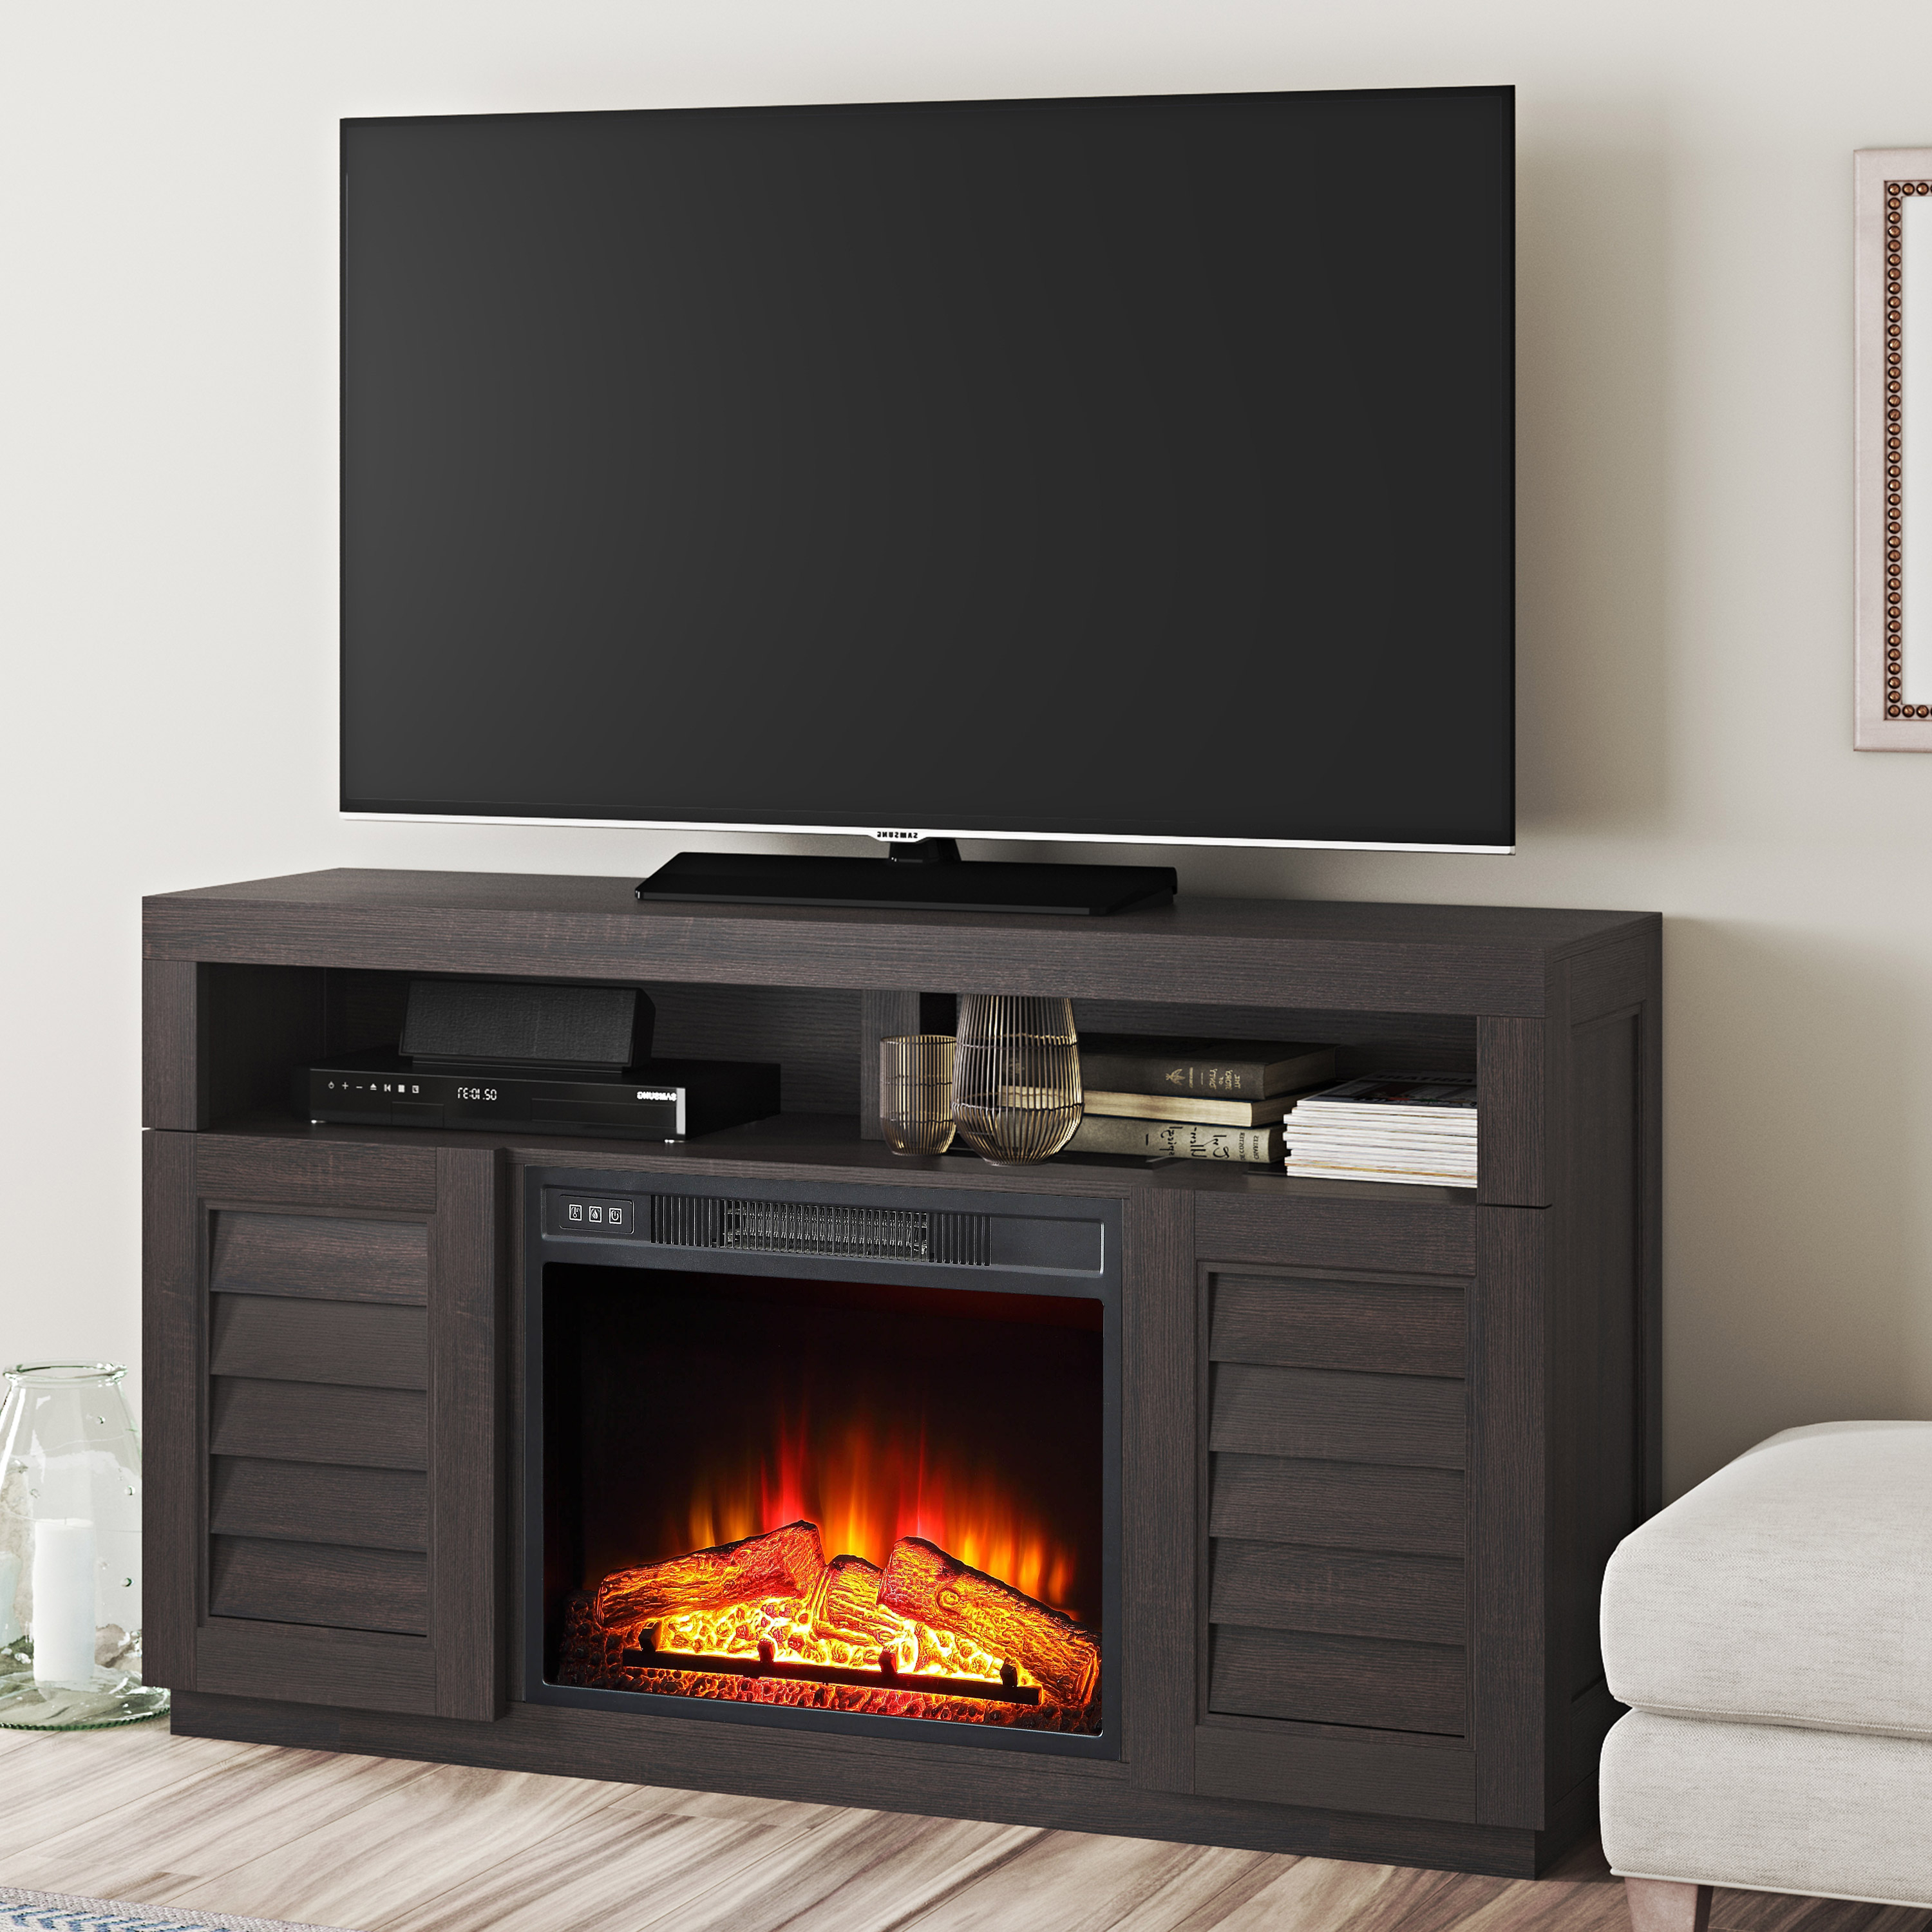 Preferred Tv Stands & Entertainment Centers – Walmart In Enclosed Tv Cabinets For Flat Screens With Doors (Gallery 12 of 20)